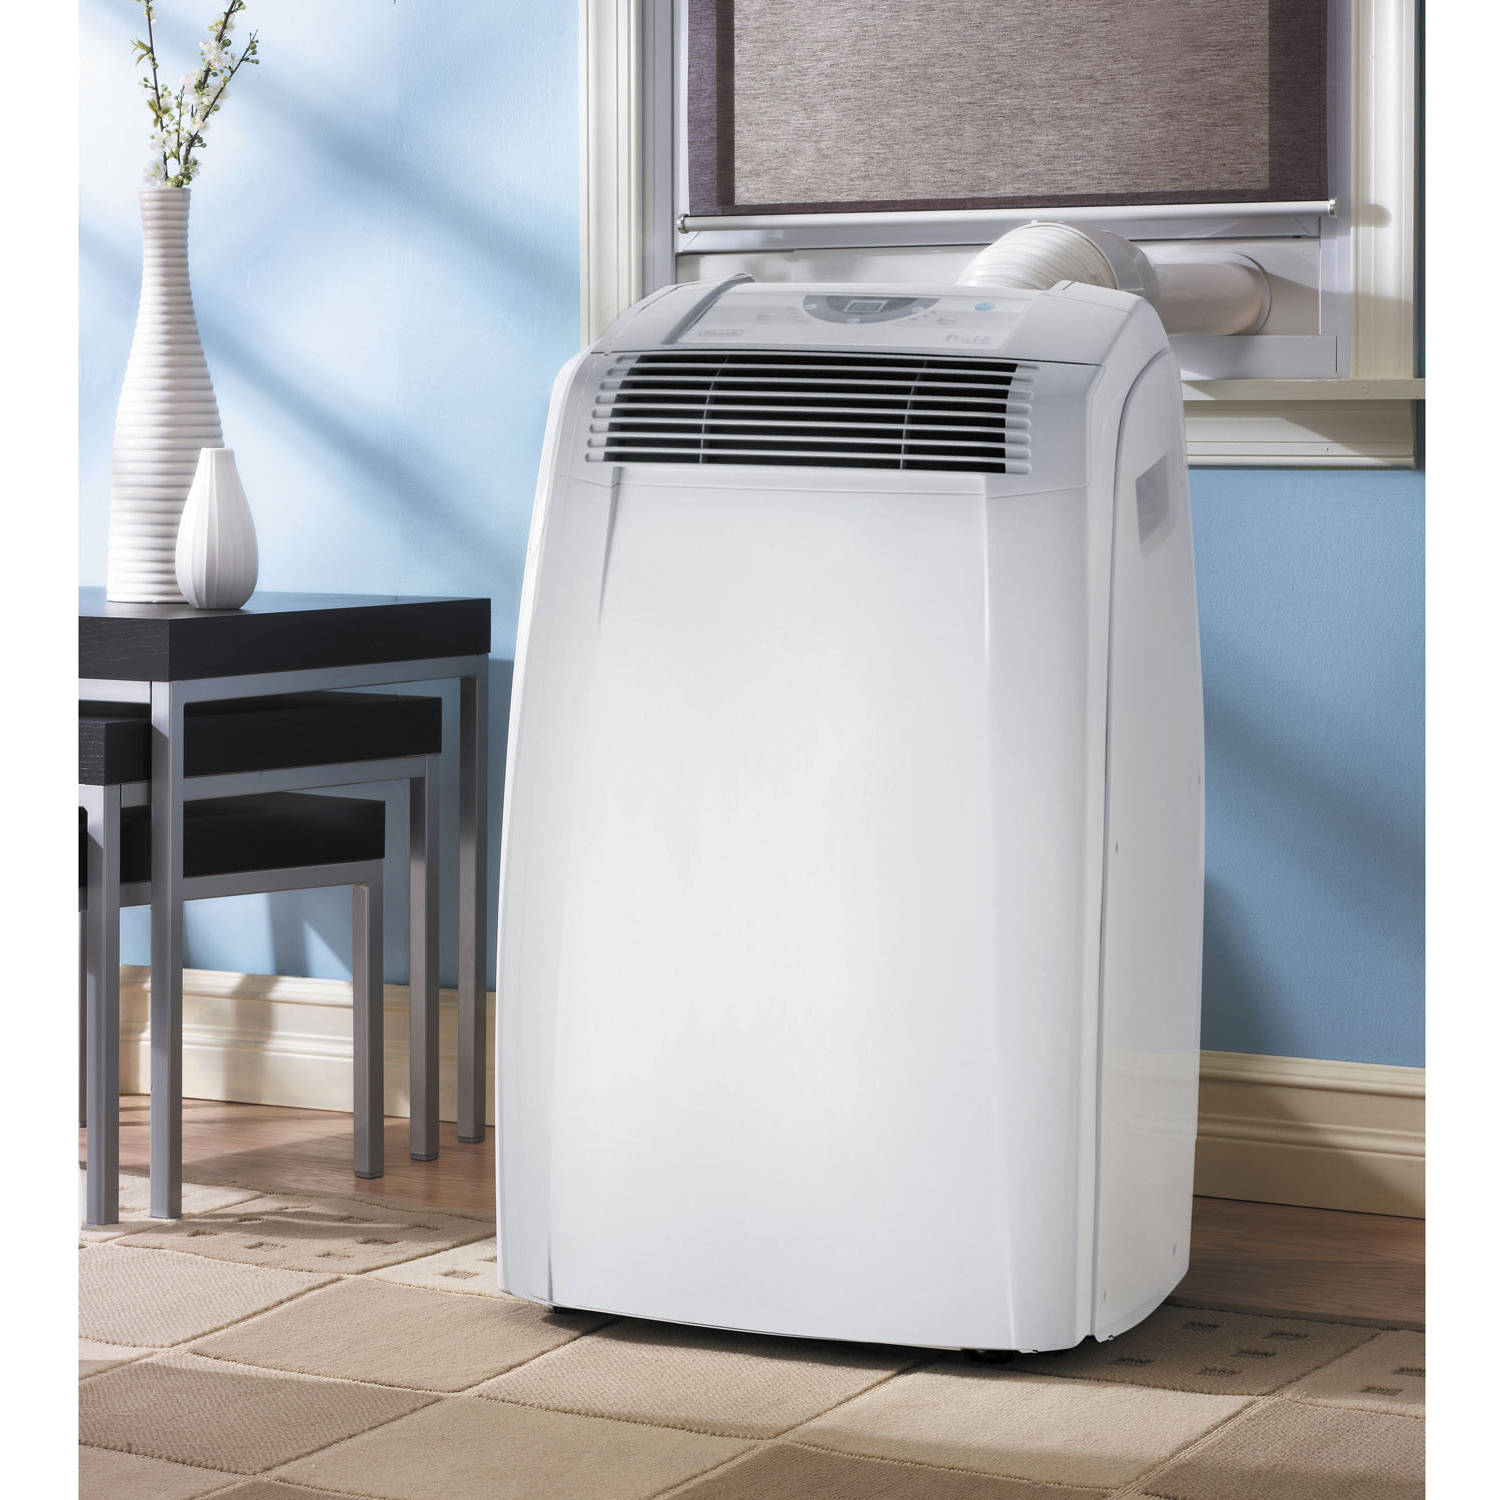 DeLonghi PACC100E Pinguino C Series 10,000-BTU 115V Portable Air Conditioner with Remote Control